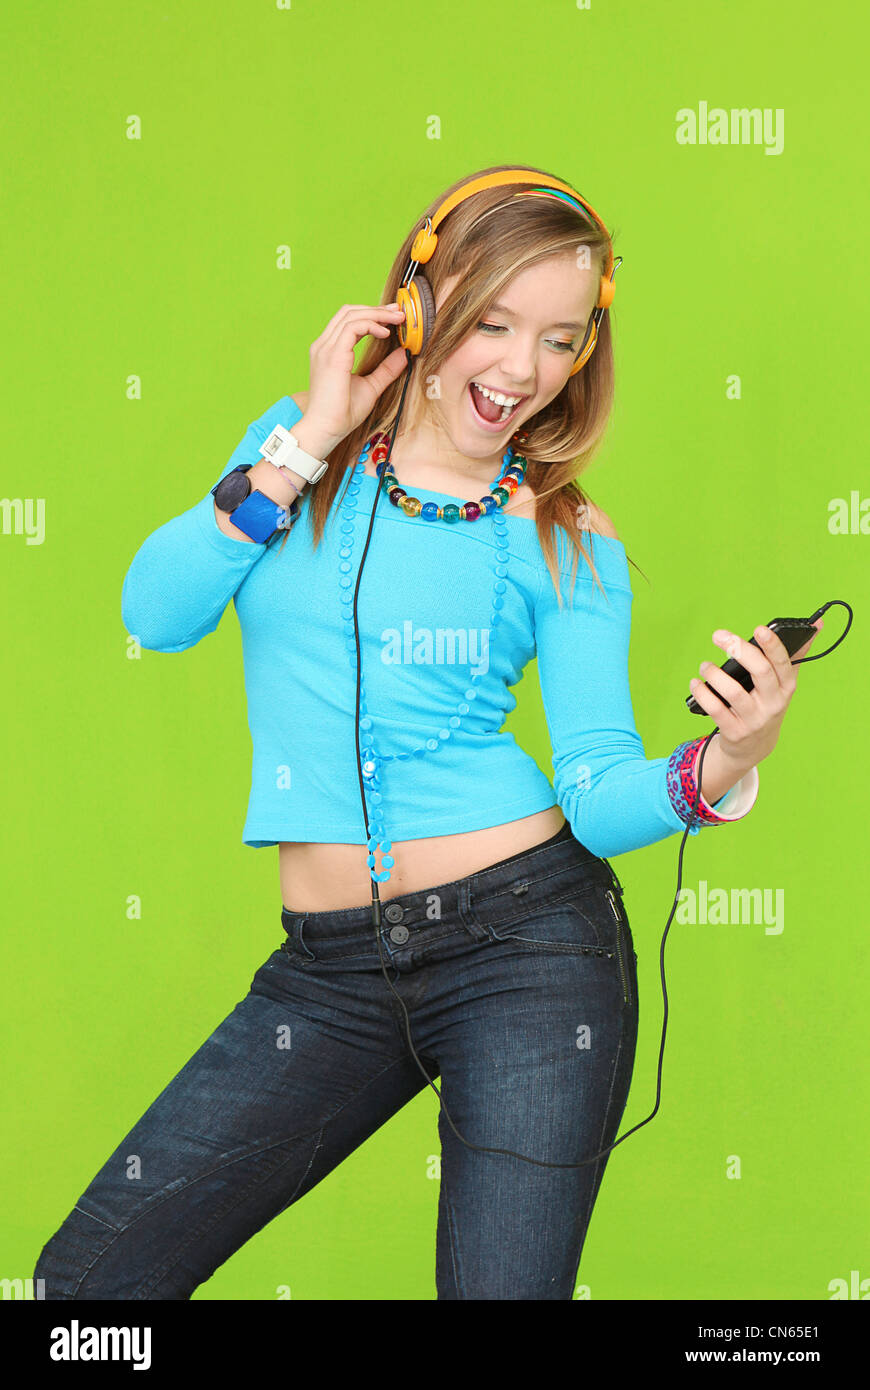 teen with headphones listening to music - Stock Image